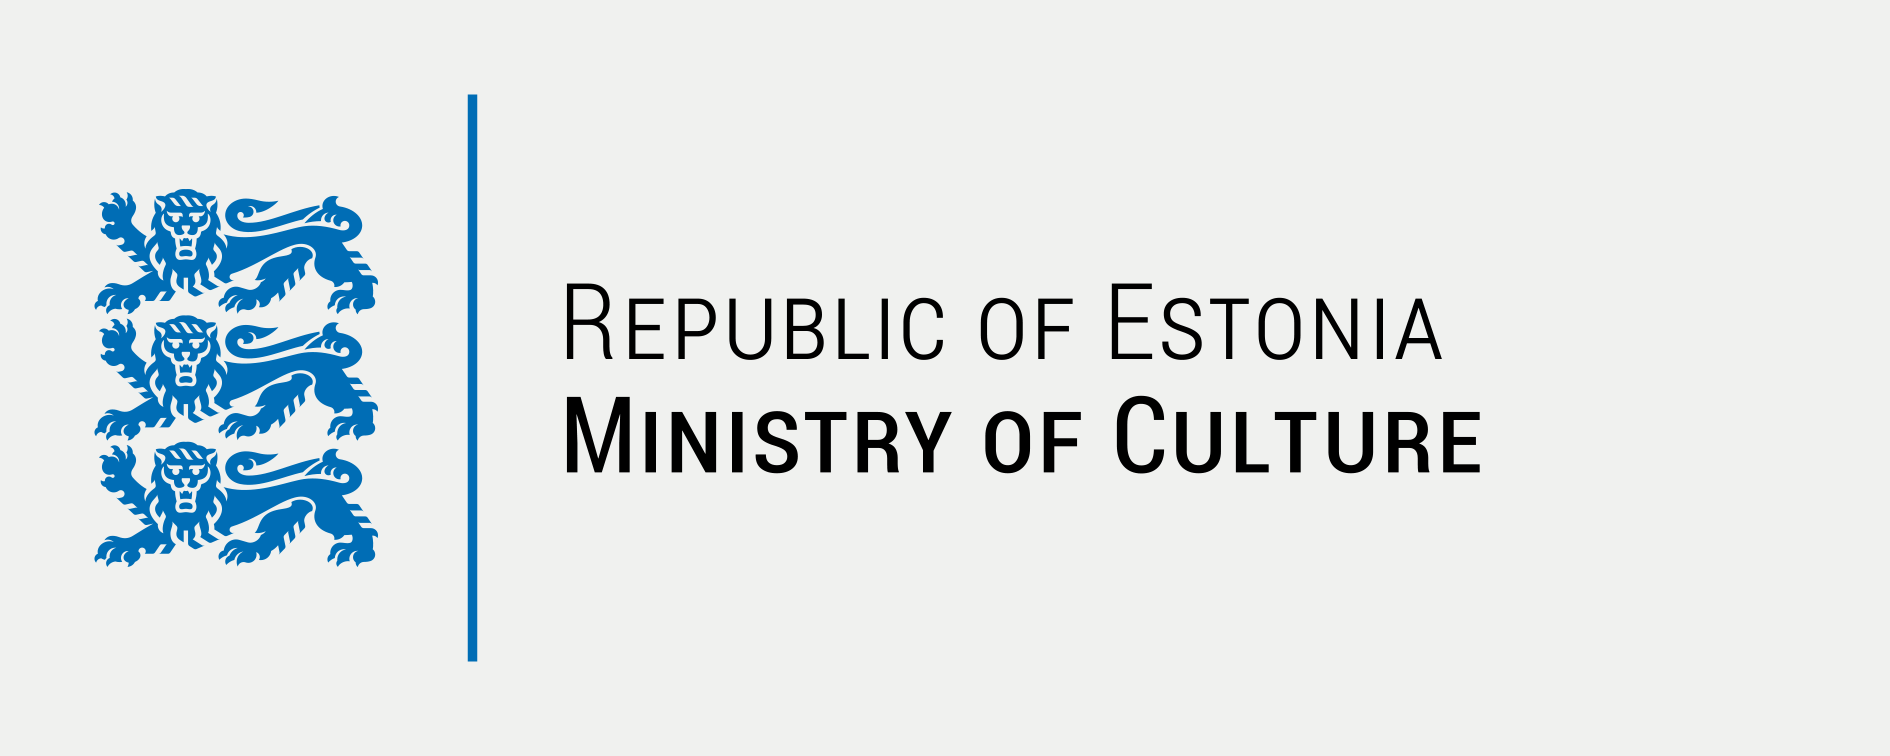 Ministry of Culture of Estonia